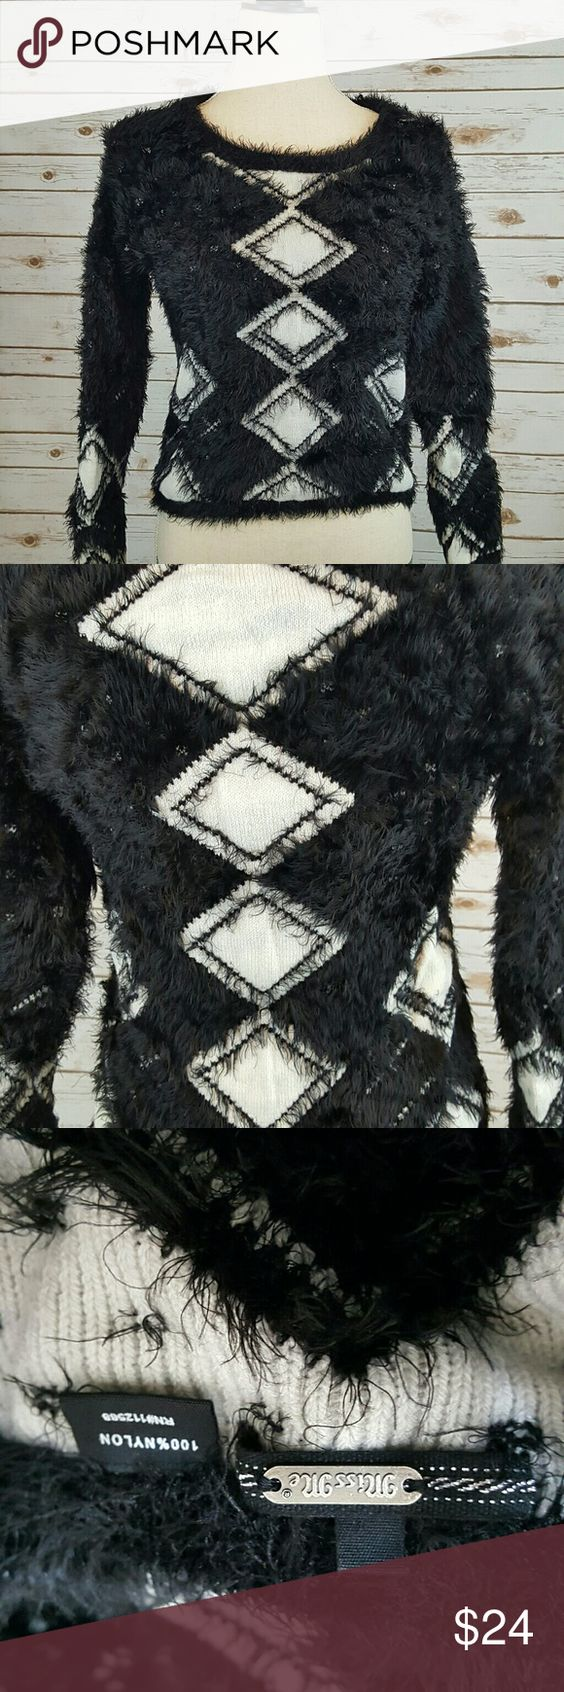 "Miss Me ""furry"" black and white diamond sweater sm Miss Me black and white furry nylon sweater. Has white diamond shaped design. Excellent preowned condition. Will accept reasonable offers :) Miss Me Sweaters"